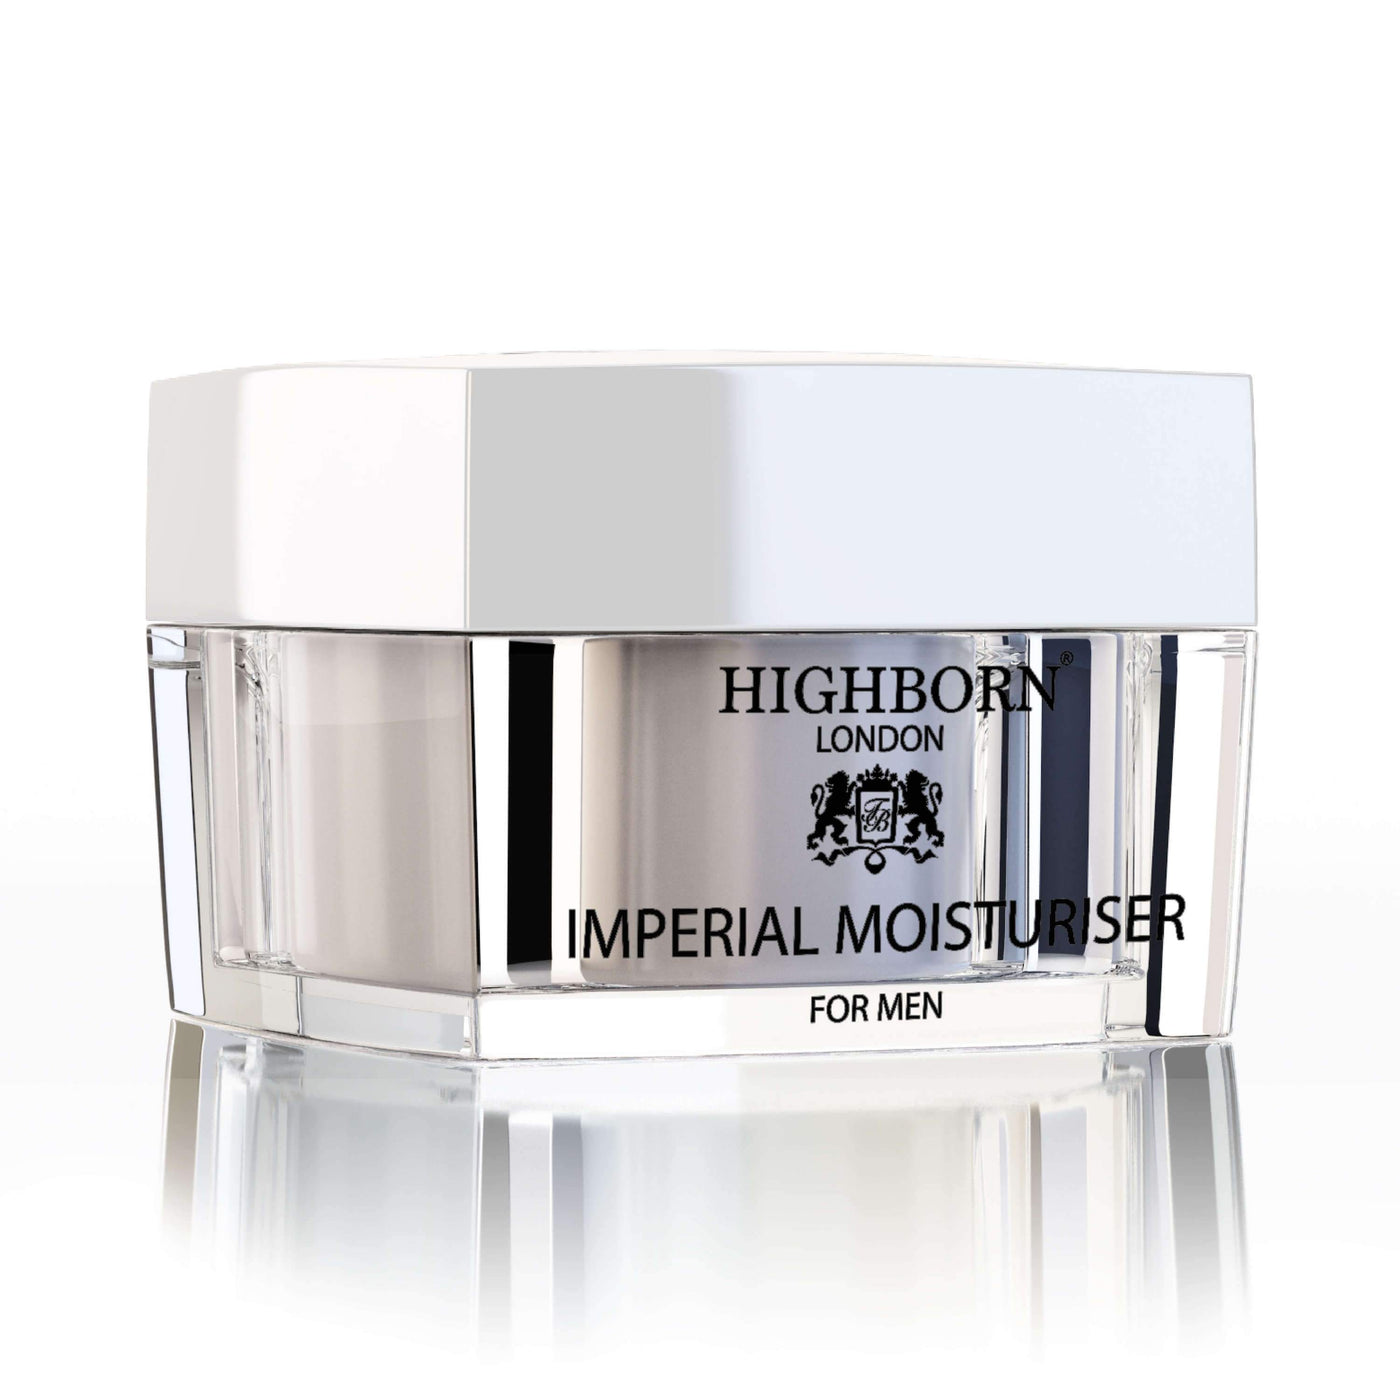 For MEN: Imperial Moisturiser Skincare Highborn London